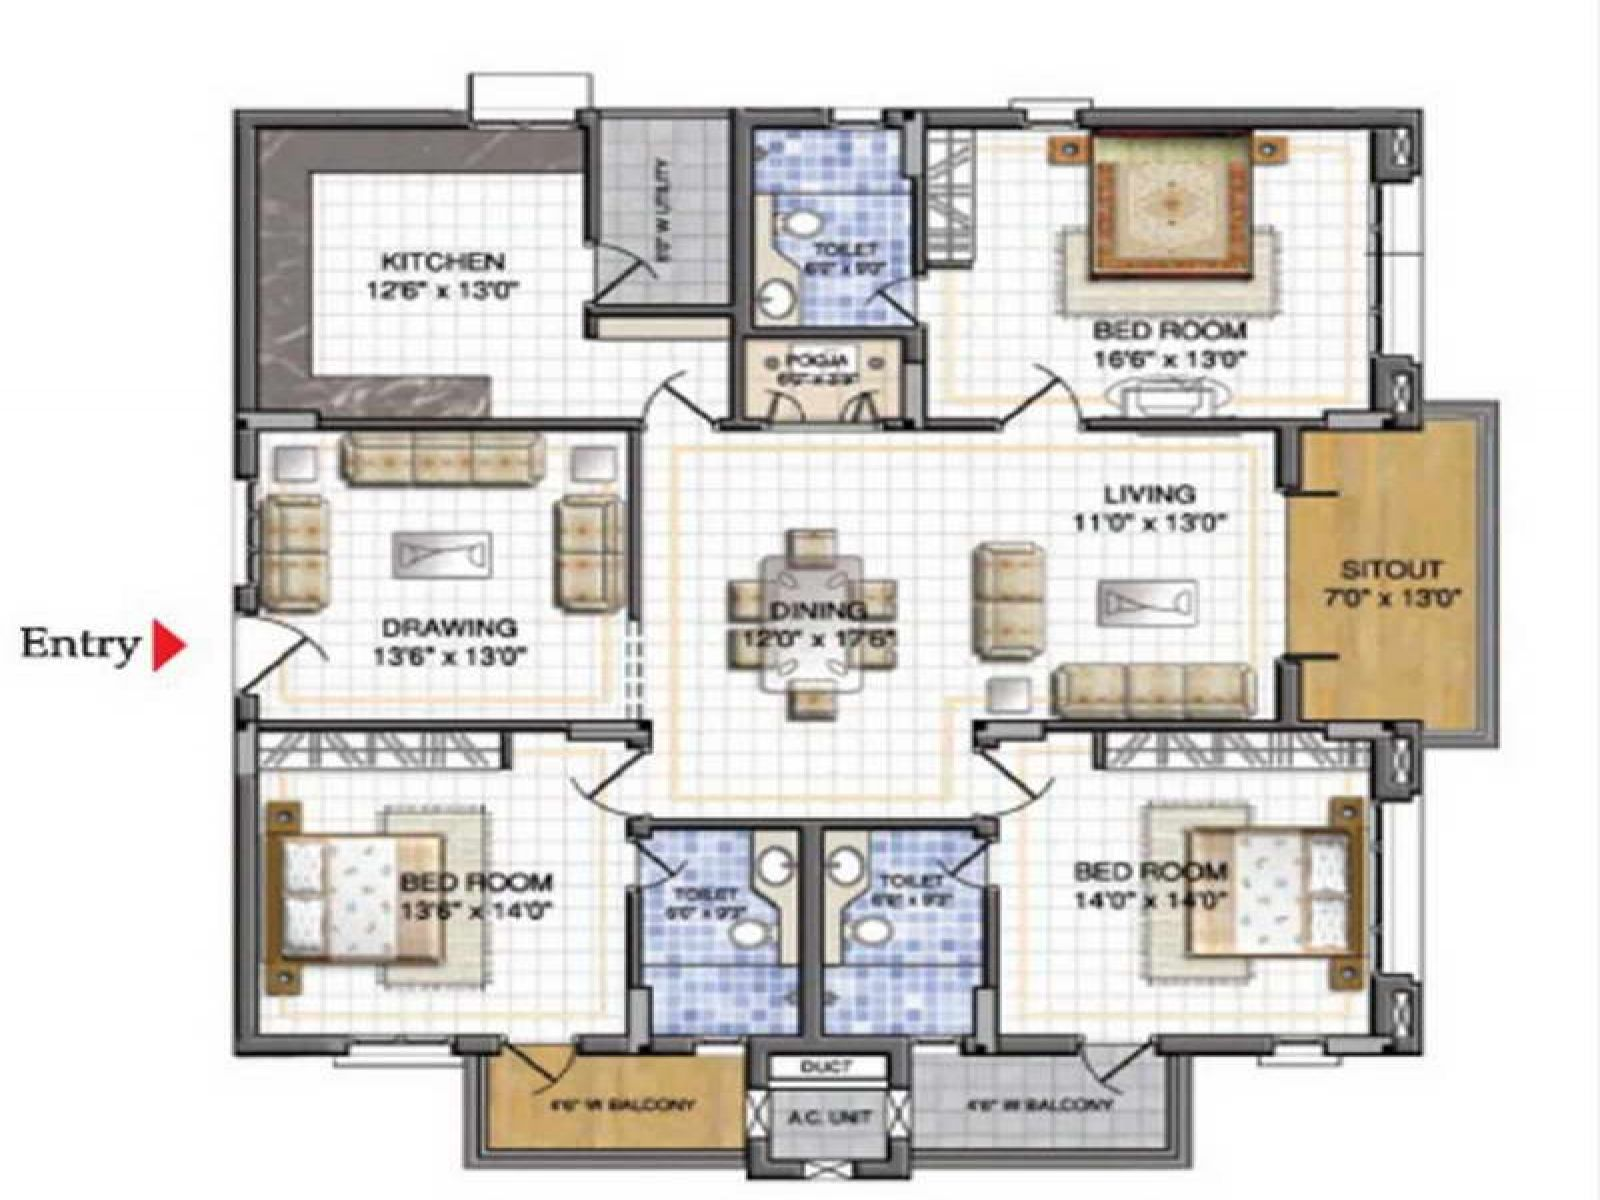 house plans designs online free - House Plans Free